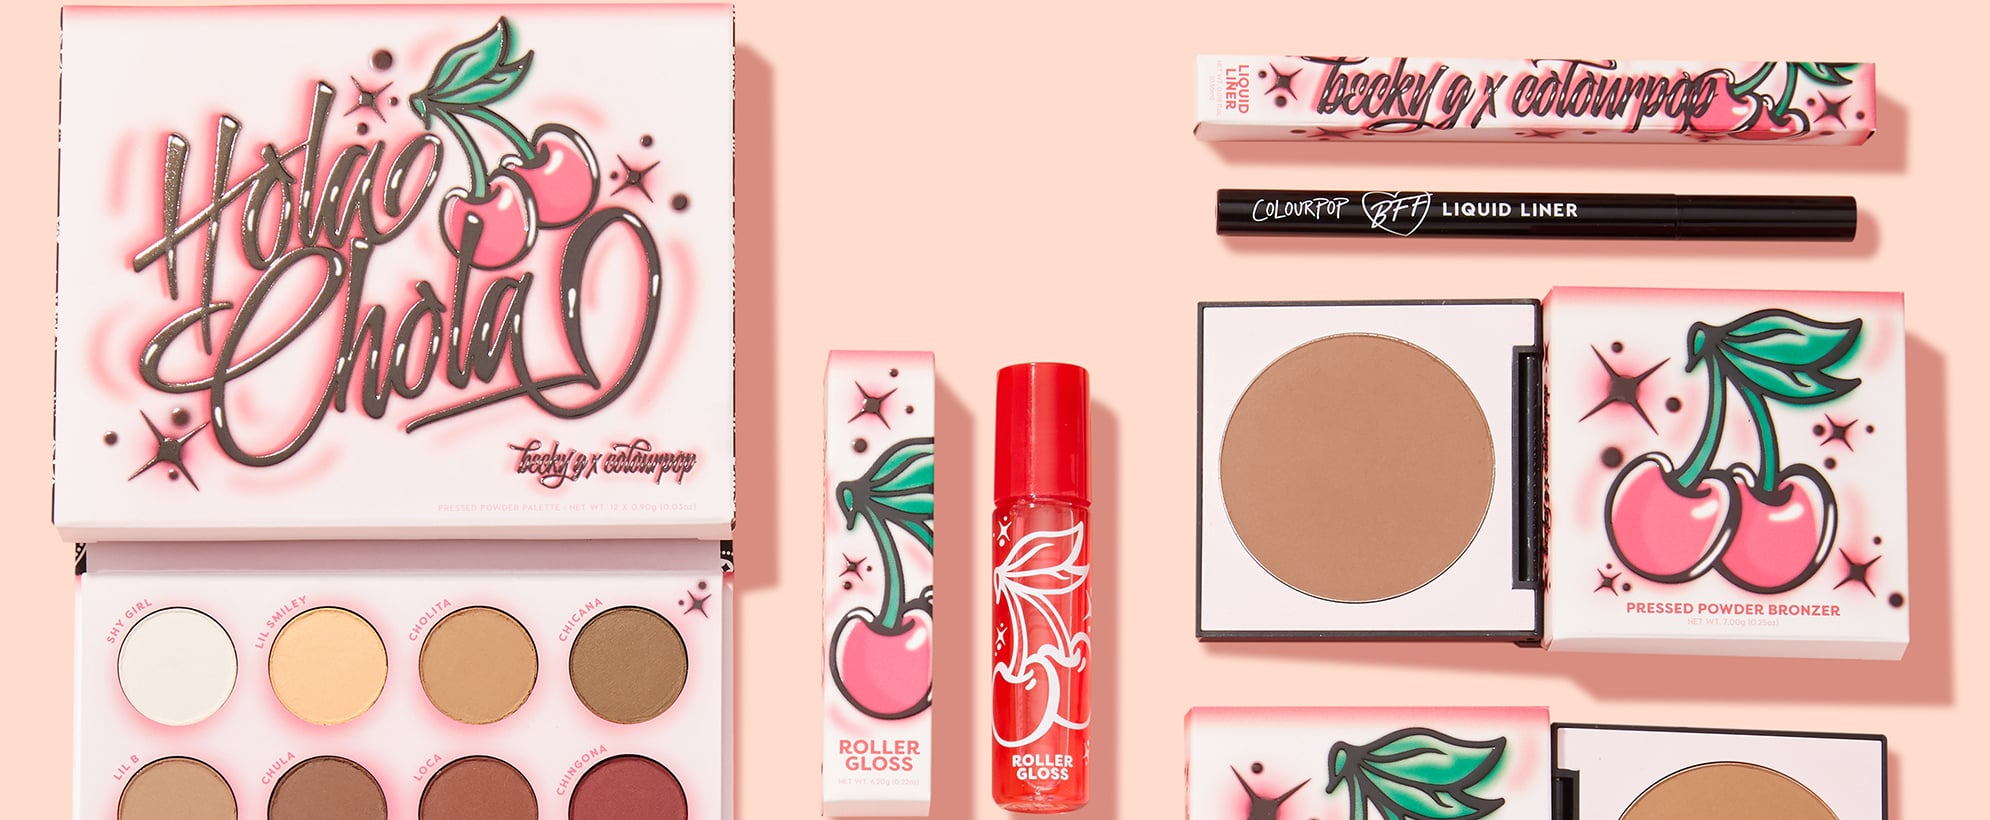 ColourPop and Becky G Hola Chola Makeup Collection